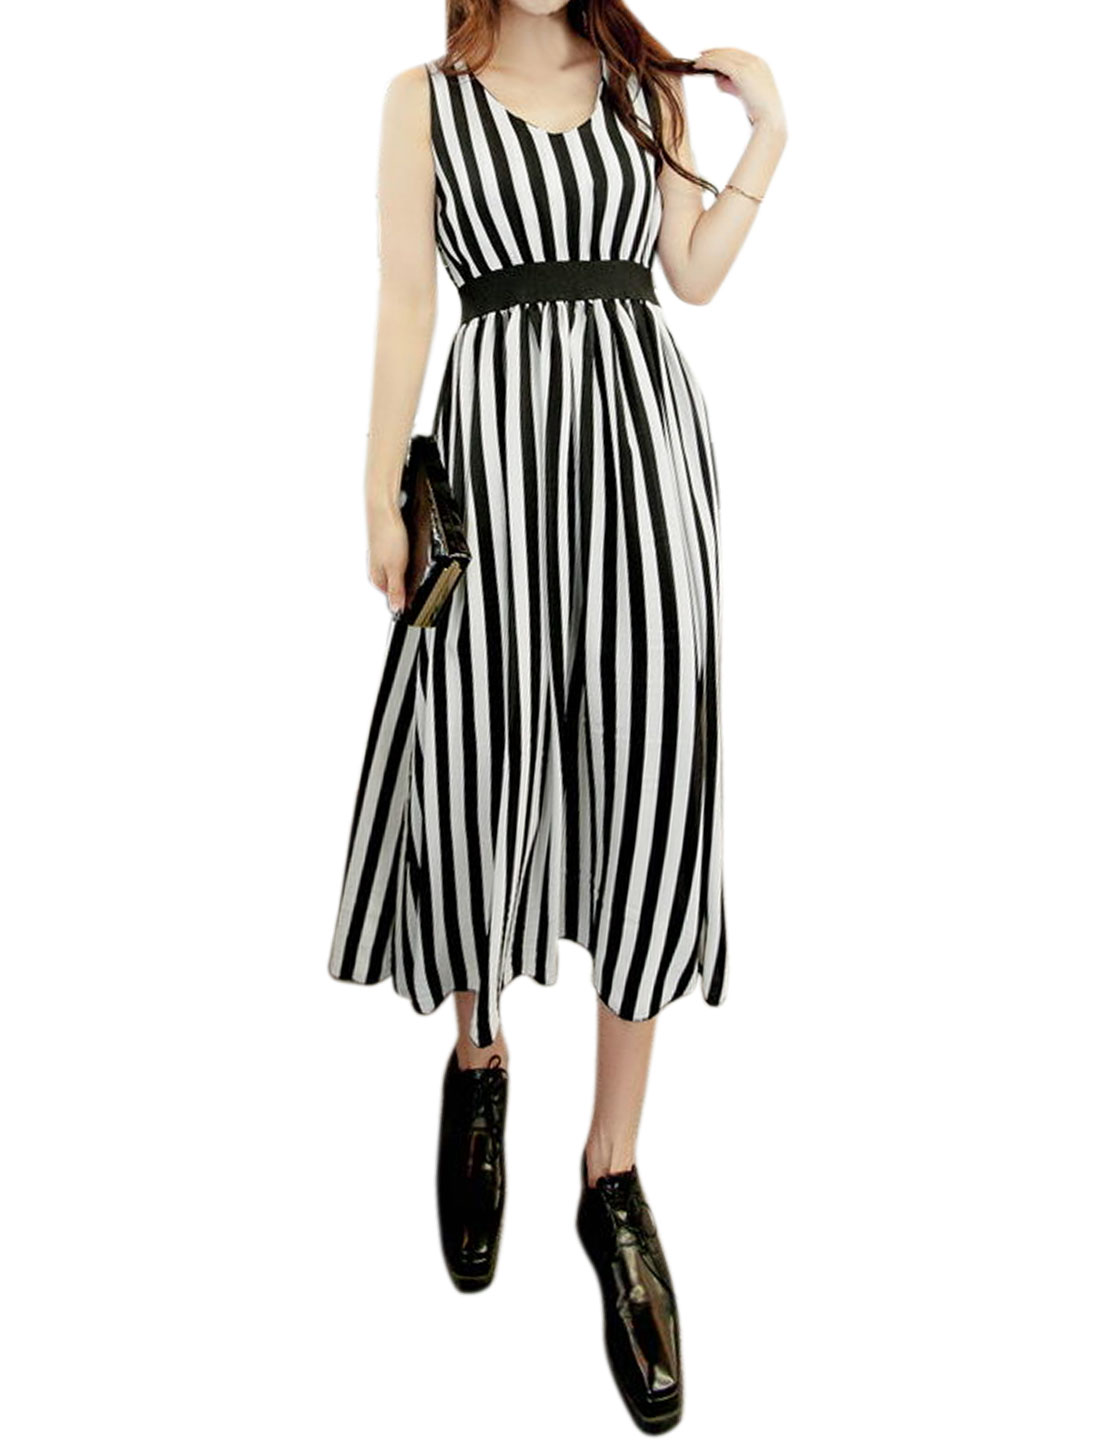 Women Sleeveless V Neck Lace Panel Stripes Midi Dress Black S